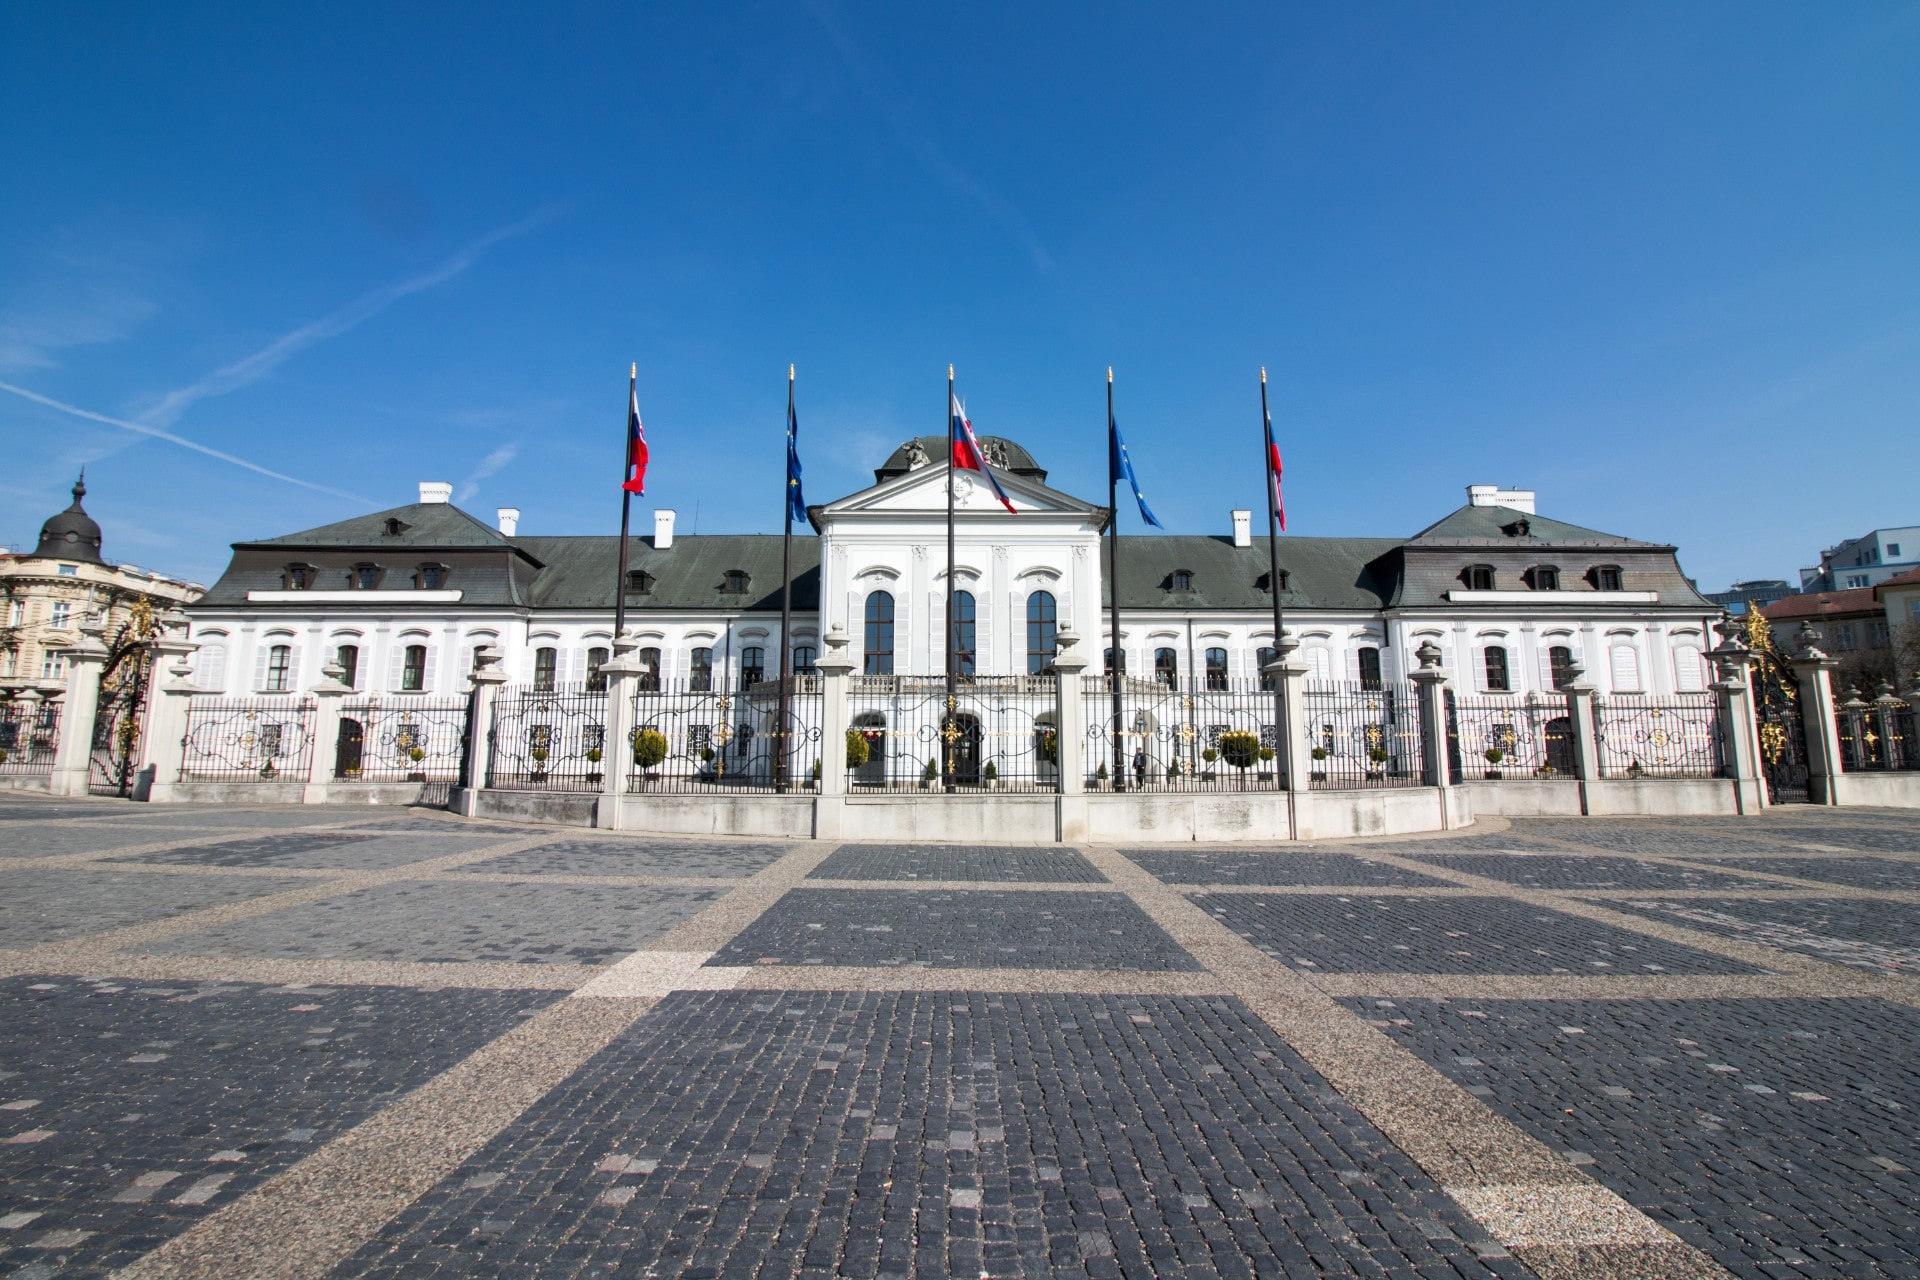 a-european-palace-on-a-sunny-summers-day-grassalkovich-palace-bratislava